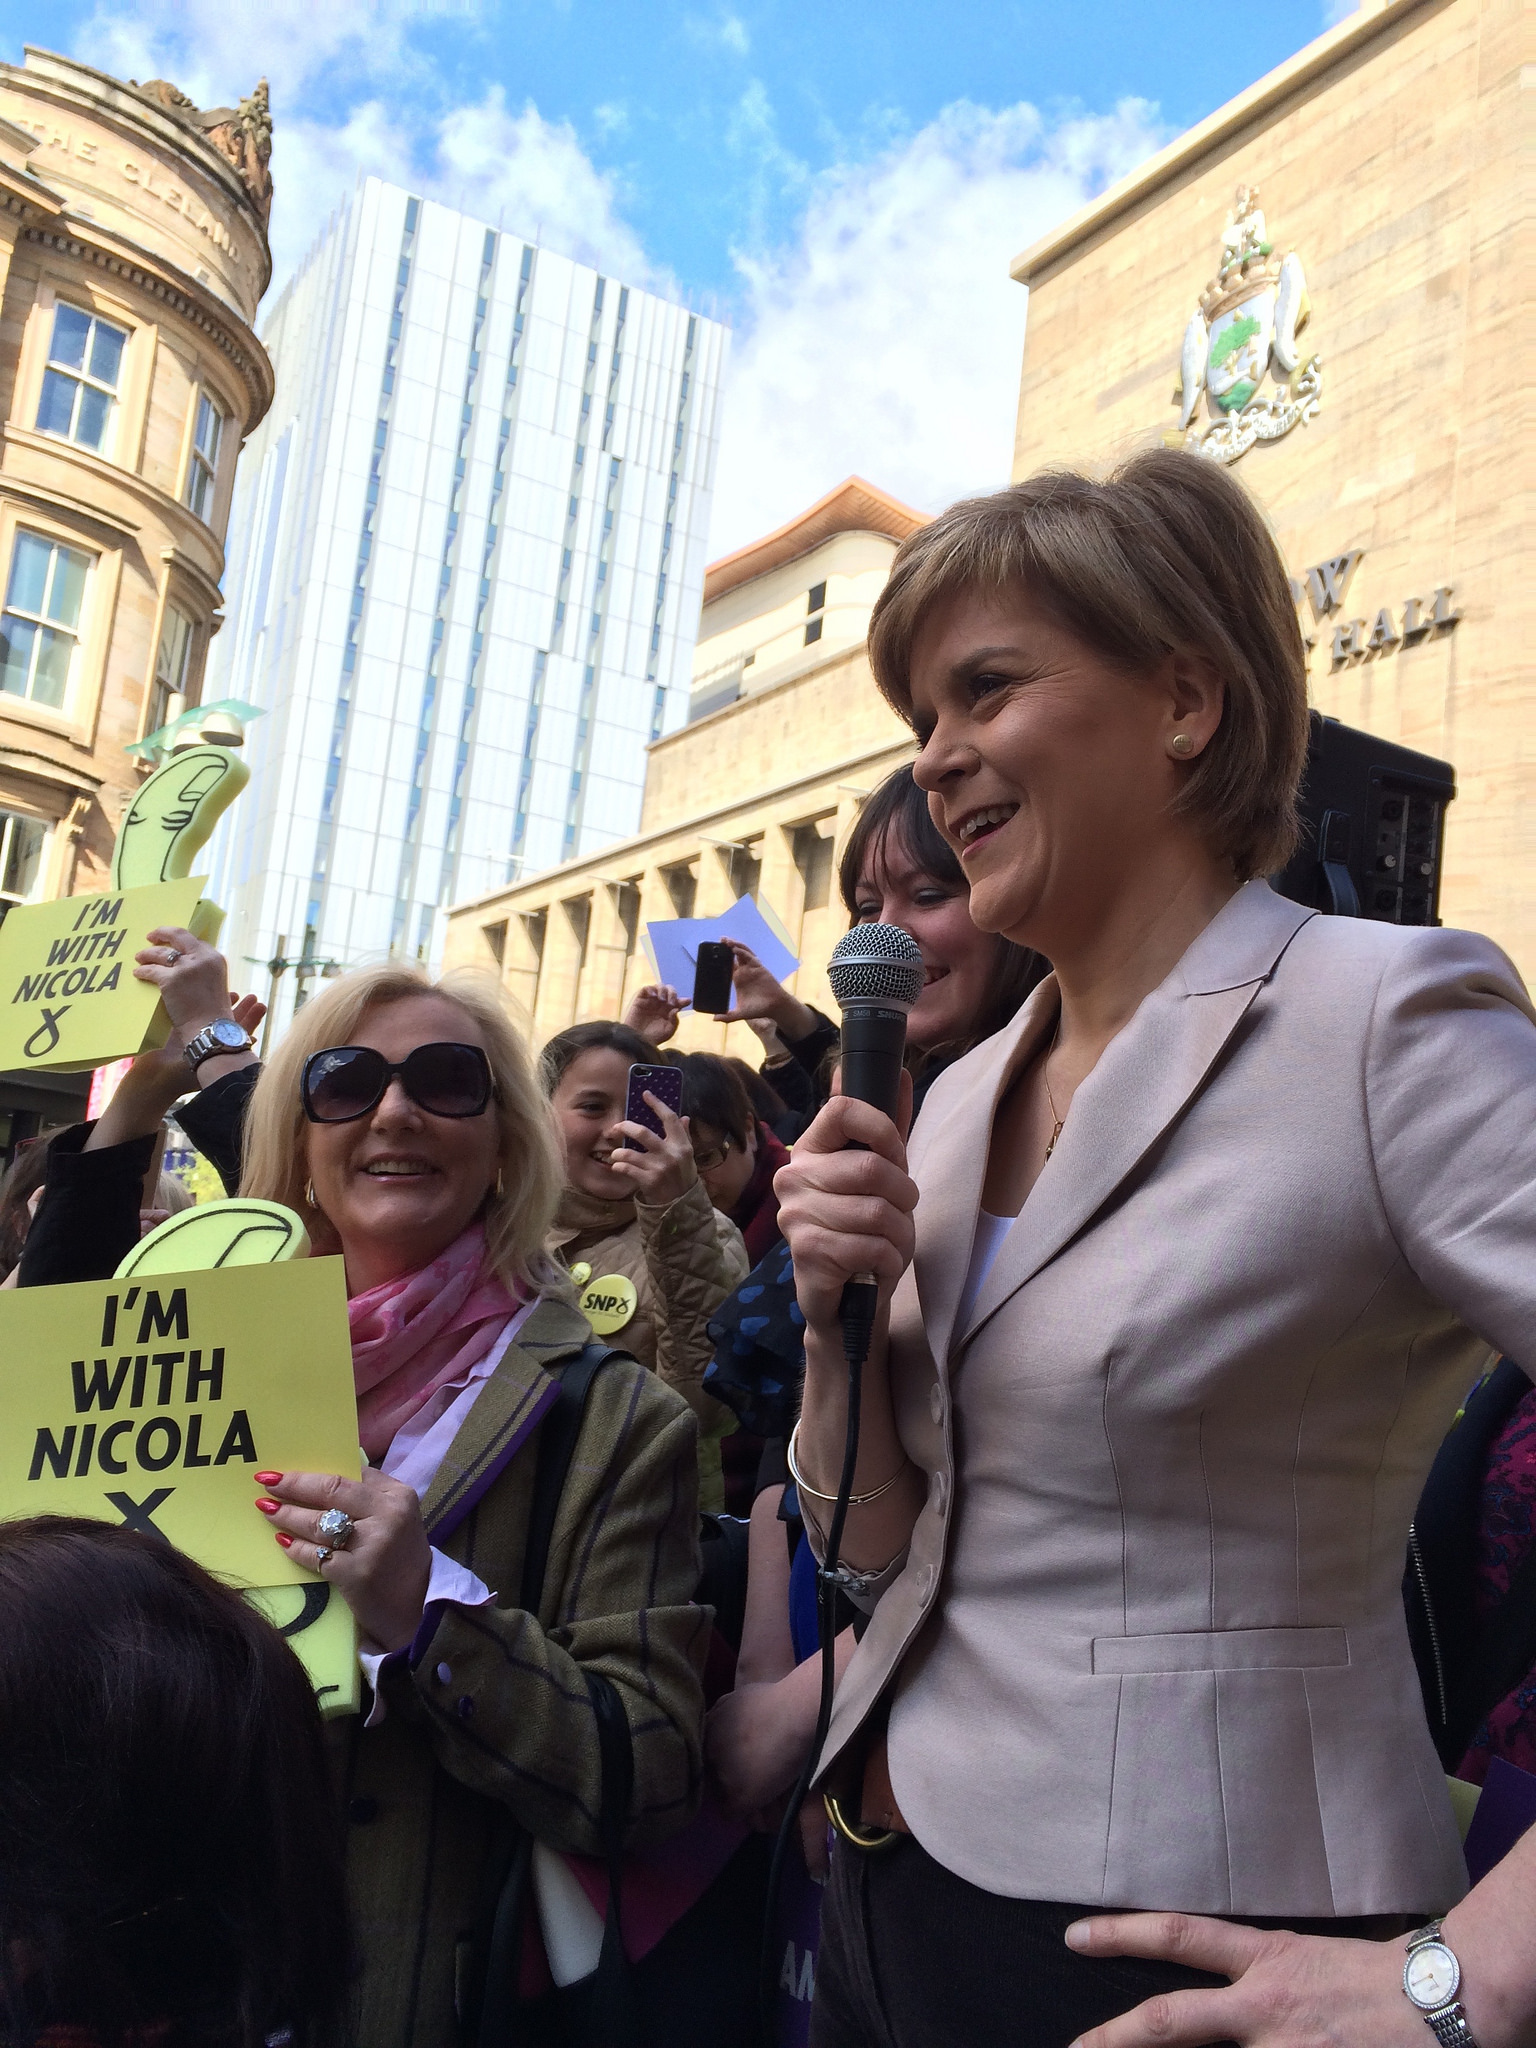 Having served as Deputy First Minister under Alex Salmond since 2007, Nicola Sturgeon succeeded him as First Minister of Scotland and leader of the SNP following the rejection of independence by Scottish voters, but her party has enjoyed a surge of support that allowed them to win all but three of Scotland's 59 seats in the UK House of Commons. Image Credit:   Christine McIntosh  via  Flickr   cc